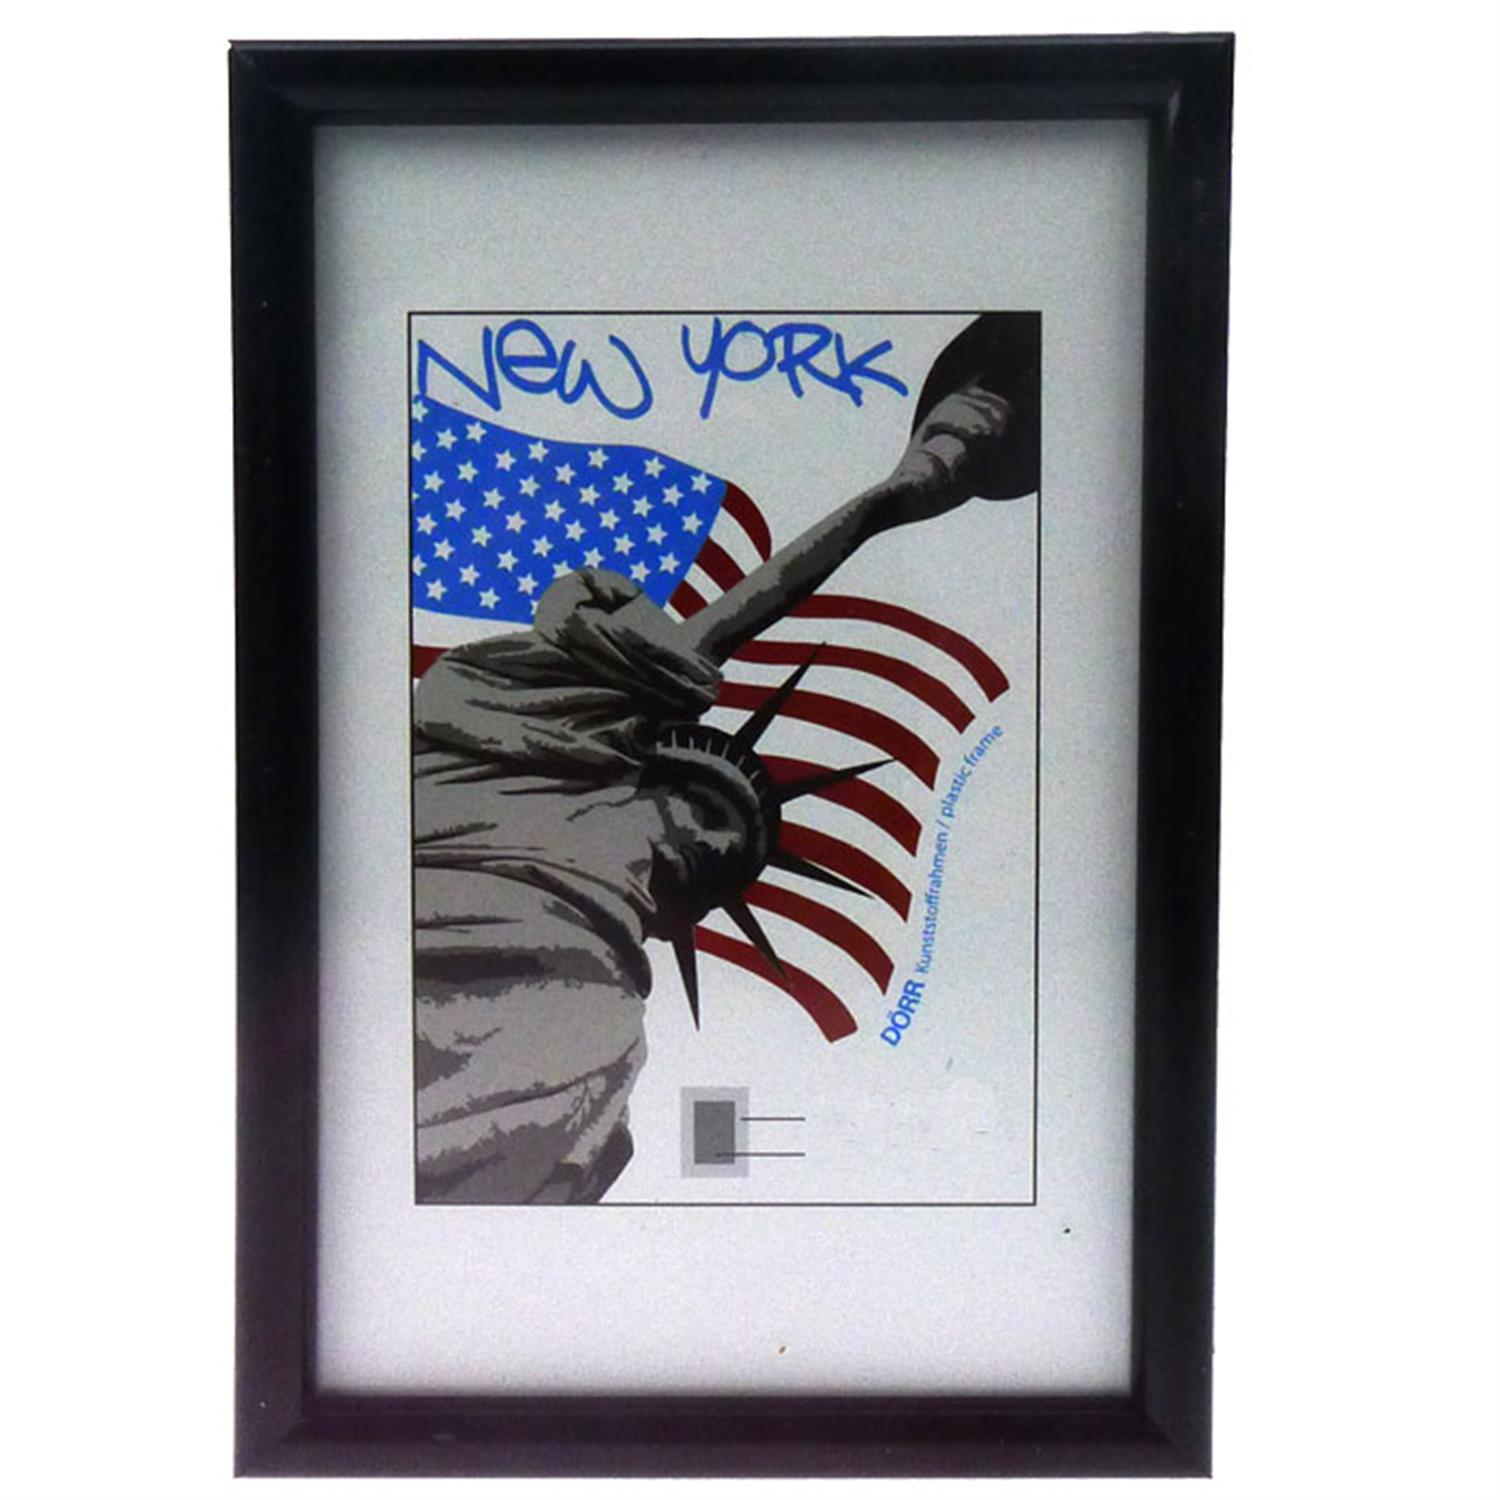 Dorr New York Black 6x4 Photo Frame